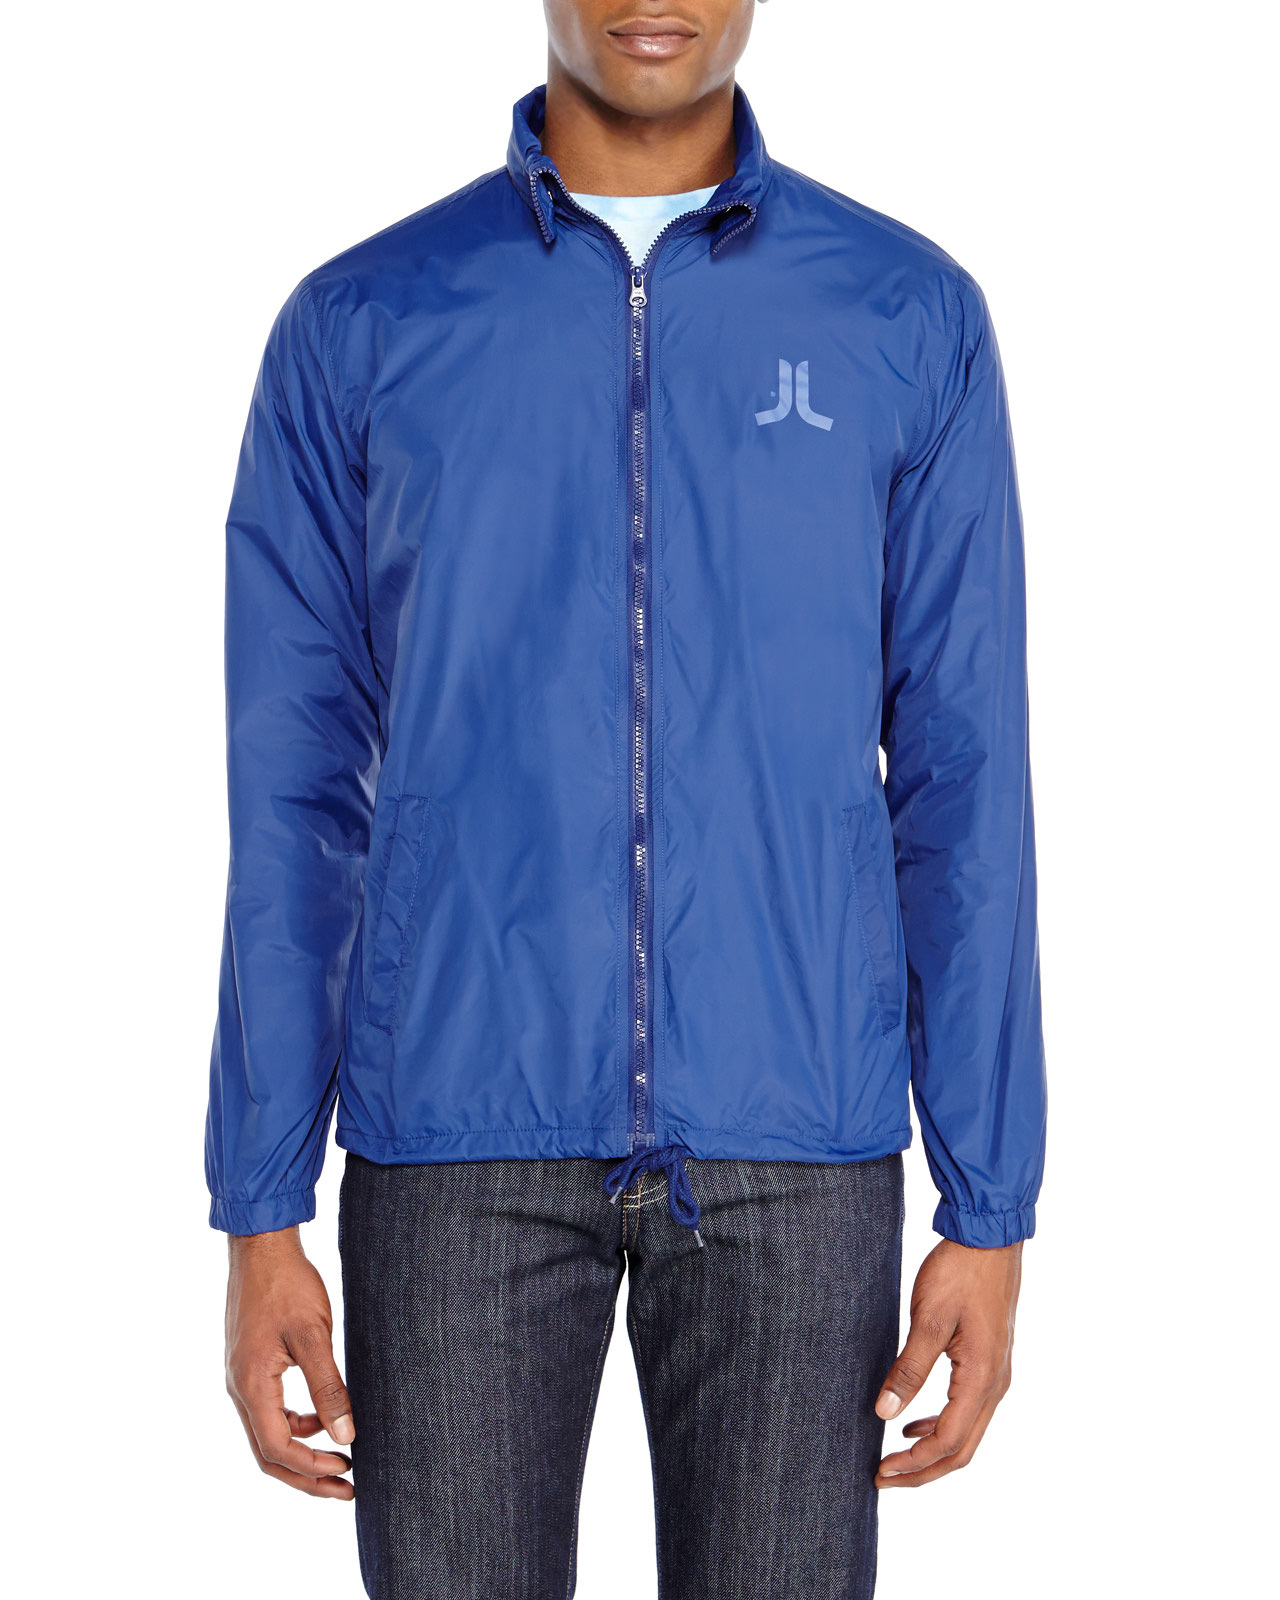 We have the largest selection of custom letterman jackets & designs in the world. You can even CREATE your own! Check out our site & customize your own today!